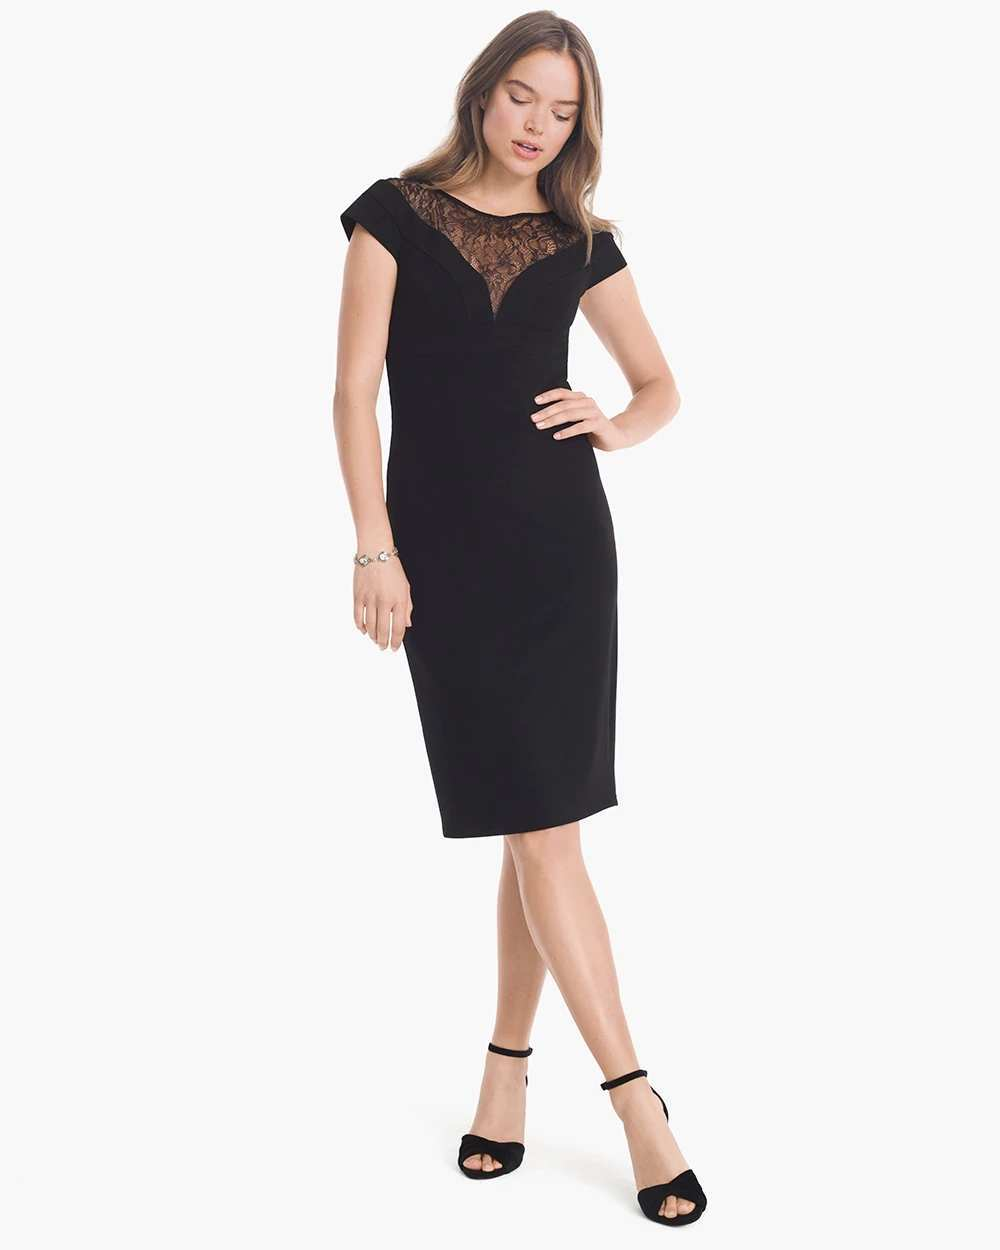 CAP-SLEEVE BLACK VEILING SHIFT DRESS | Hermosaz